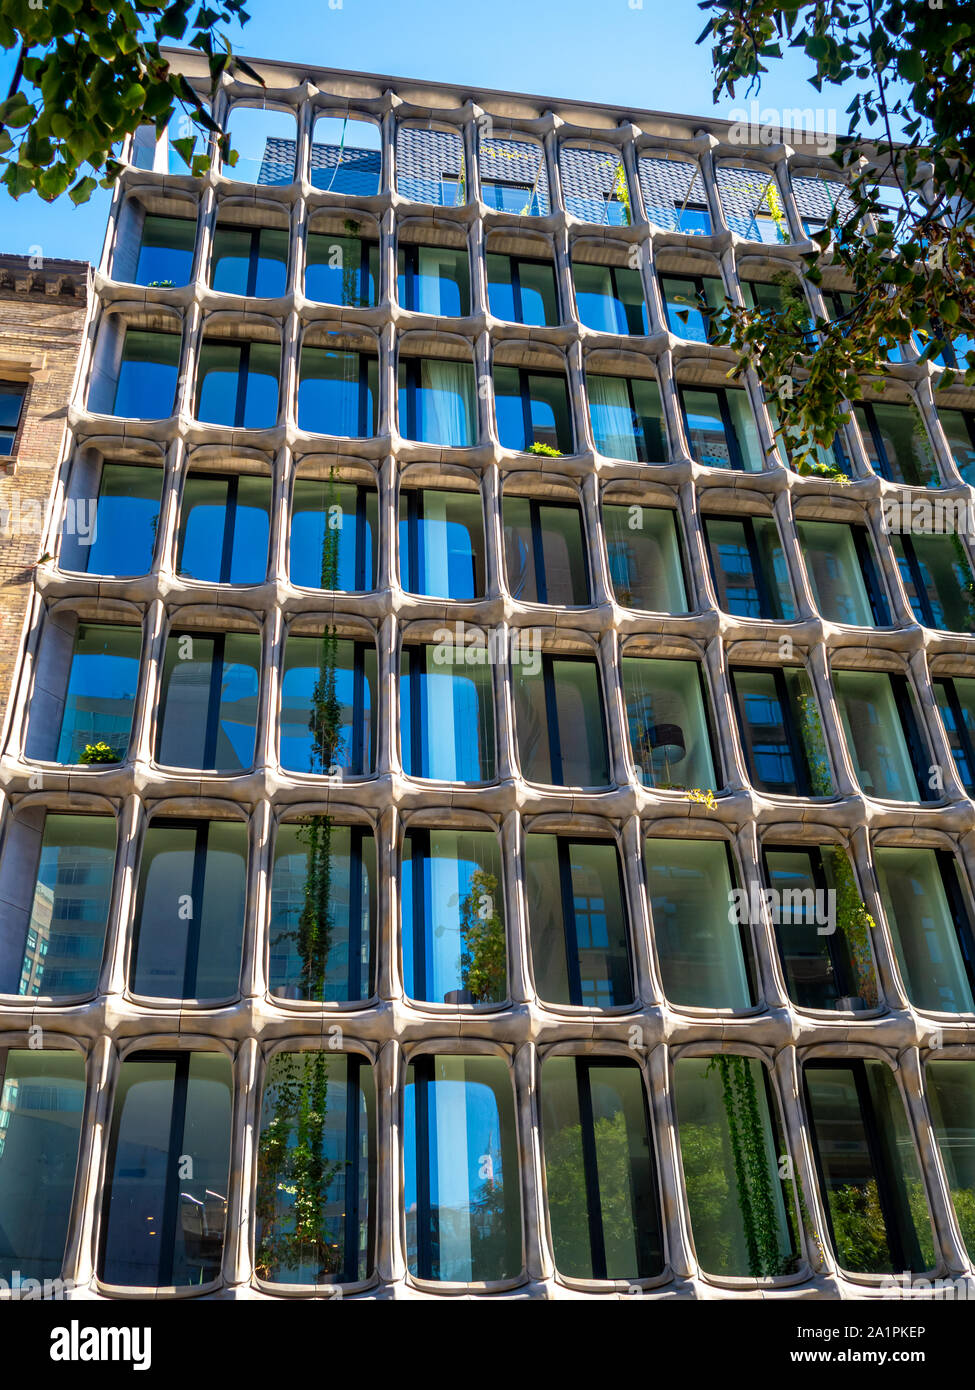 one of a kind architecture artistic building facade in downtown Manhattan Stock Photo